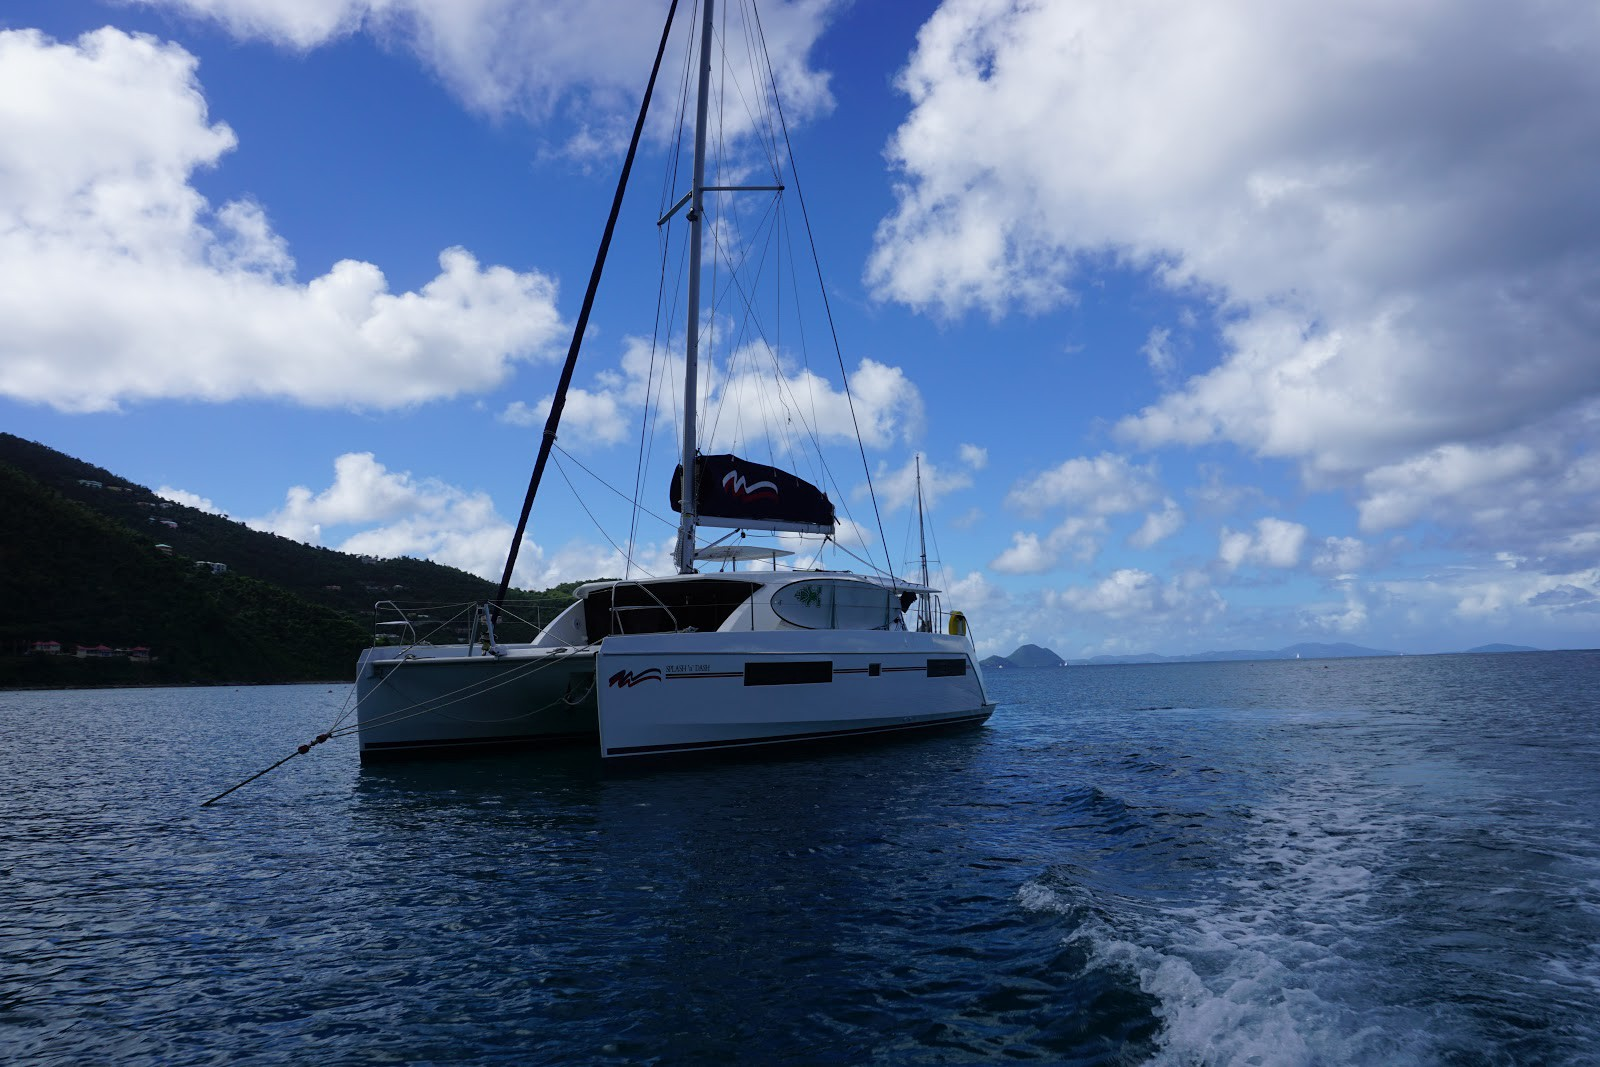 8 Days on a boat in the British Virgin Islands - Jack Moore